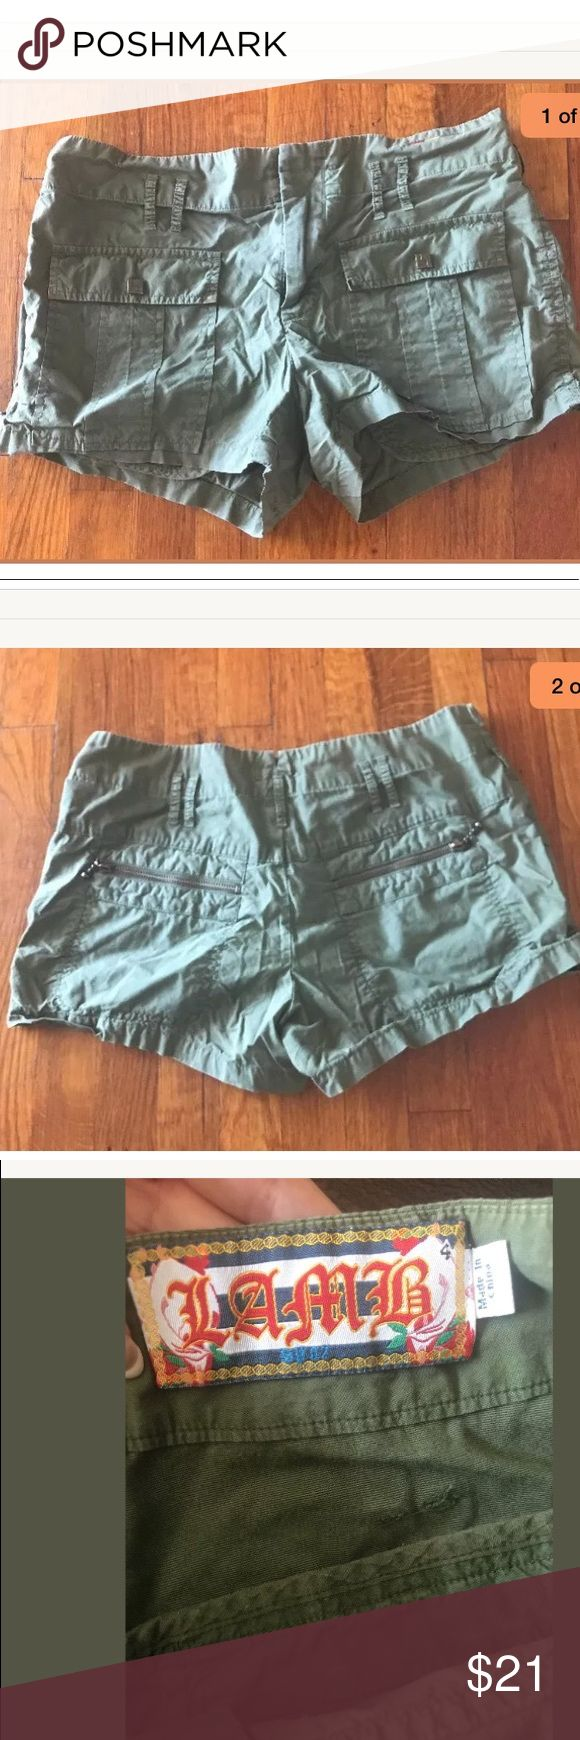 L.A.M.B Lamb Gwen Stefani green Army Shorts Size 4 Wore a couple times no rips tears or stains L.A.M.B. Shorts